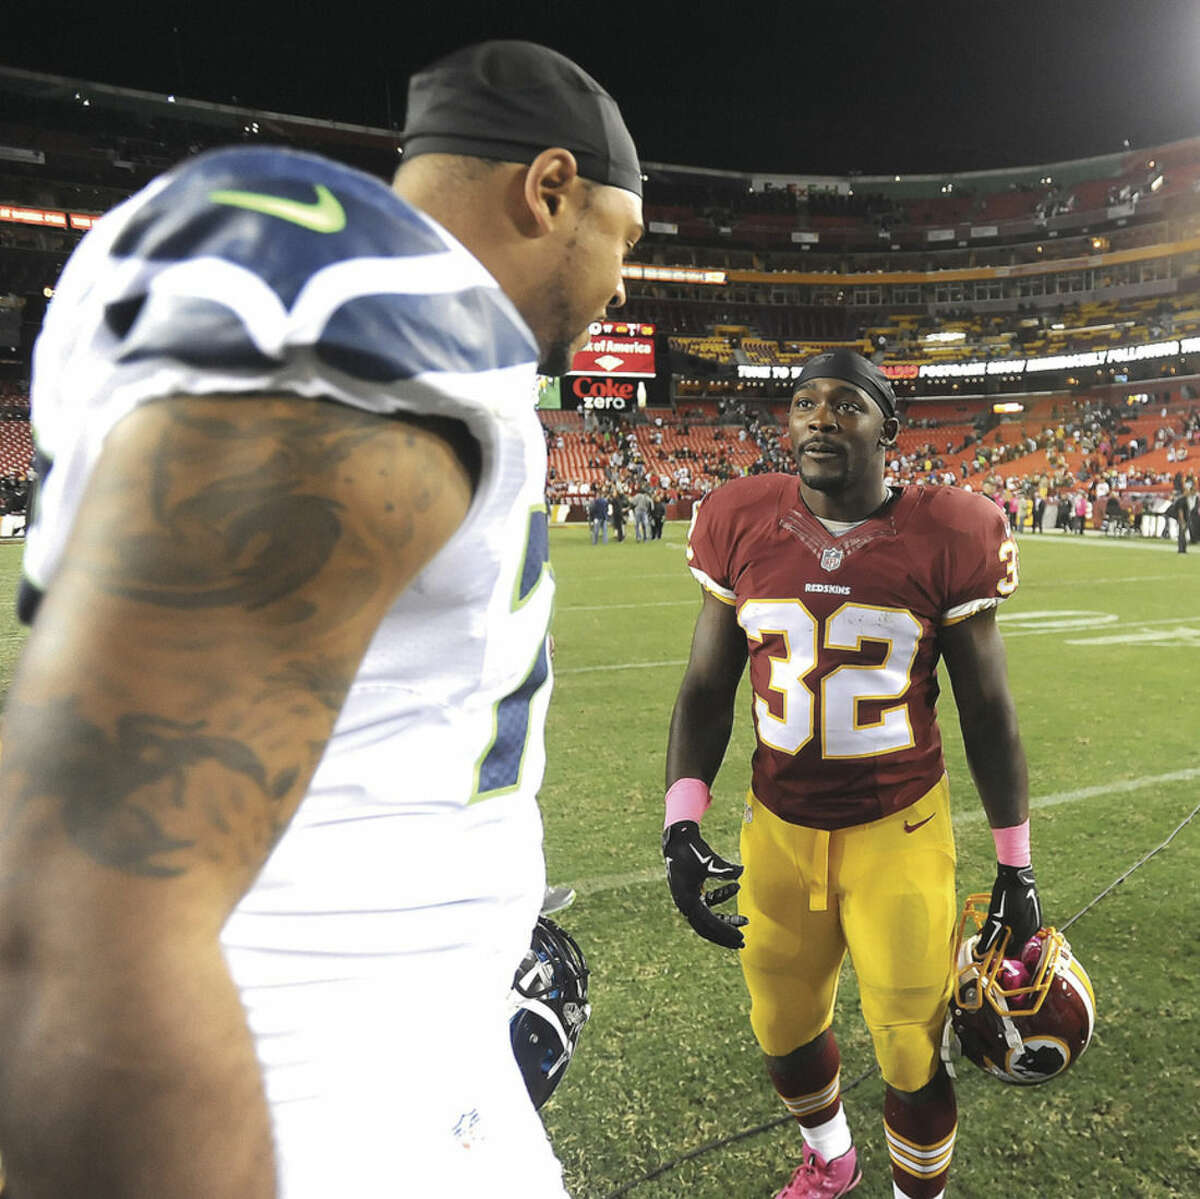 Hour photo/John Nash Norwalk's Silas Redd (32), a running back for the Washington Redskins, greets former Penn State teammate Garry Gilliam of the Seattle Seahawks after Monday night's NFL game at FedEx Field in Landover, Md.